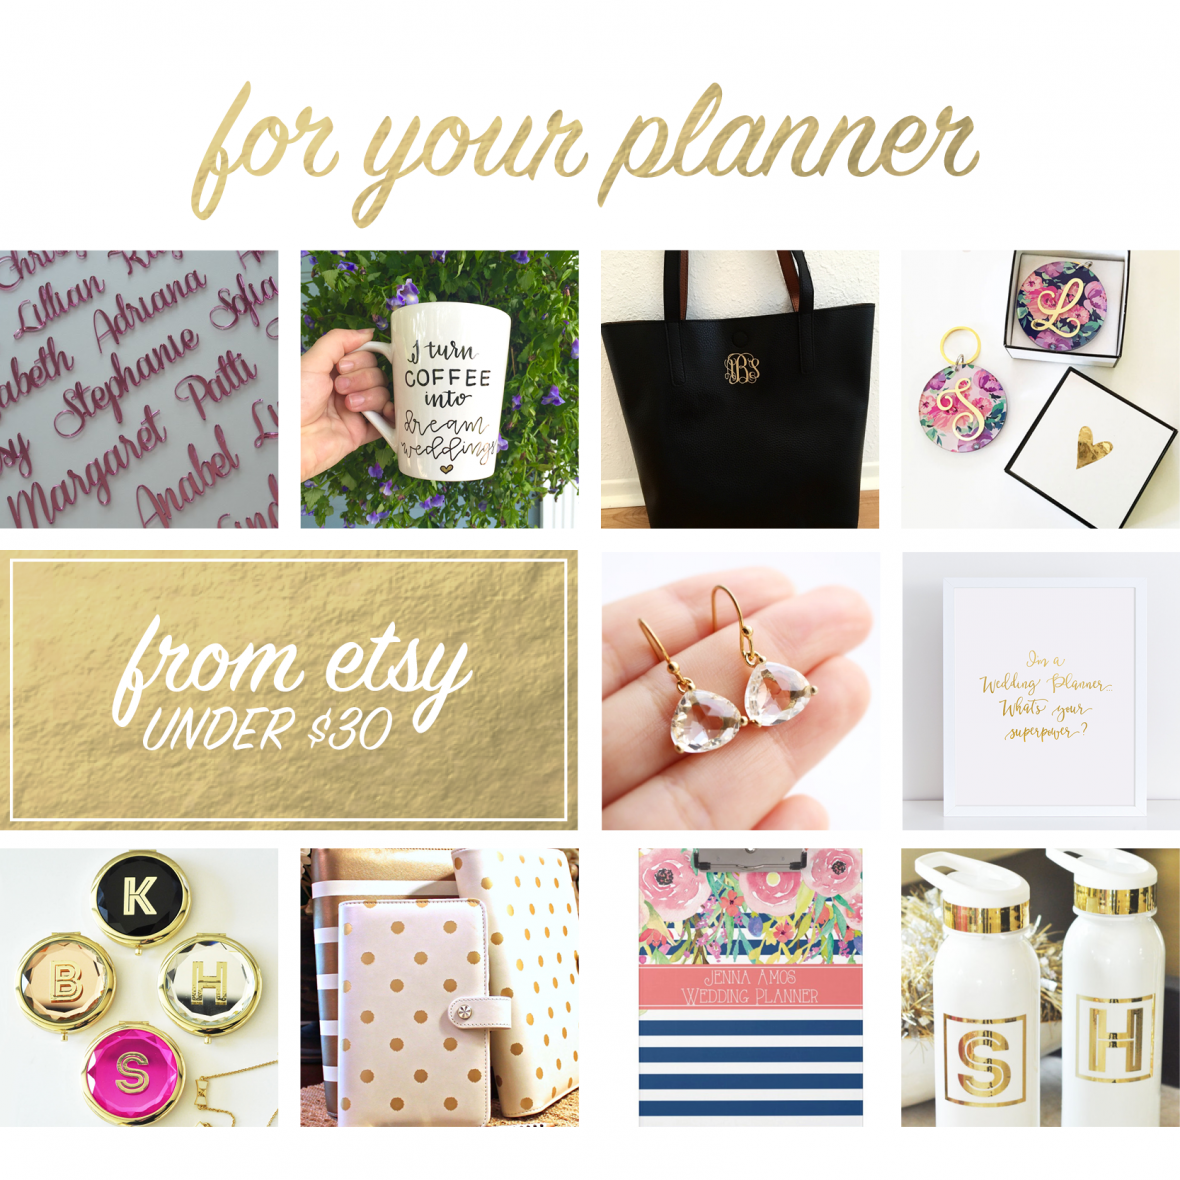 Handmade gifts for wedding planners from Etsy